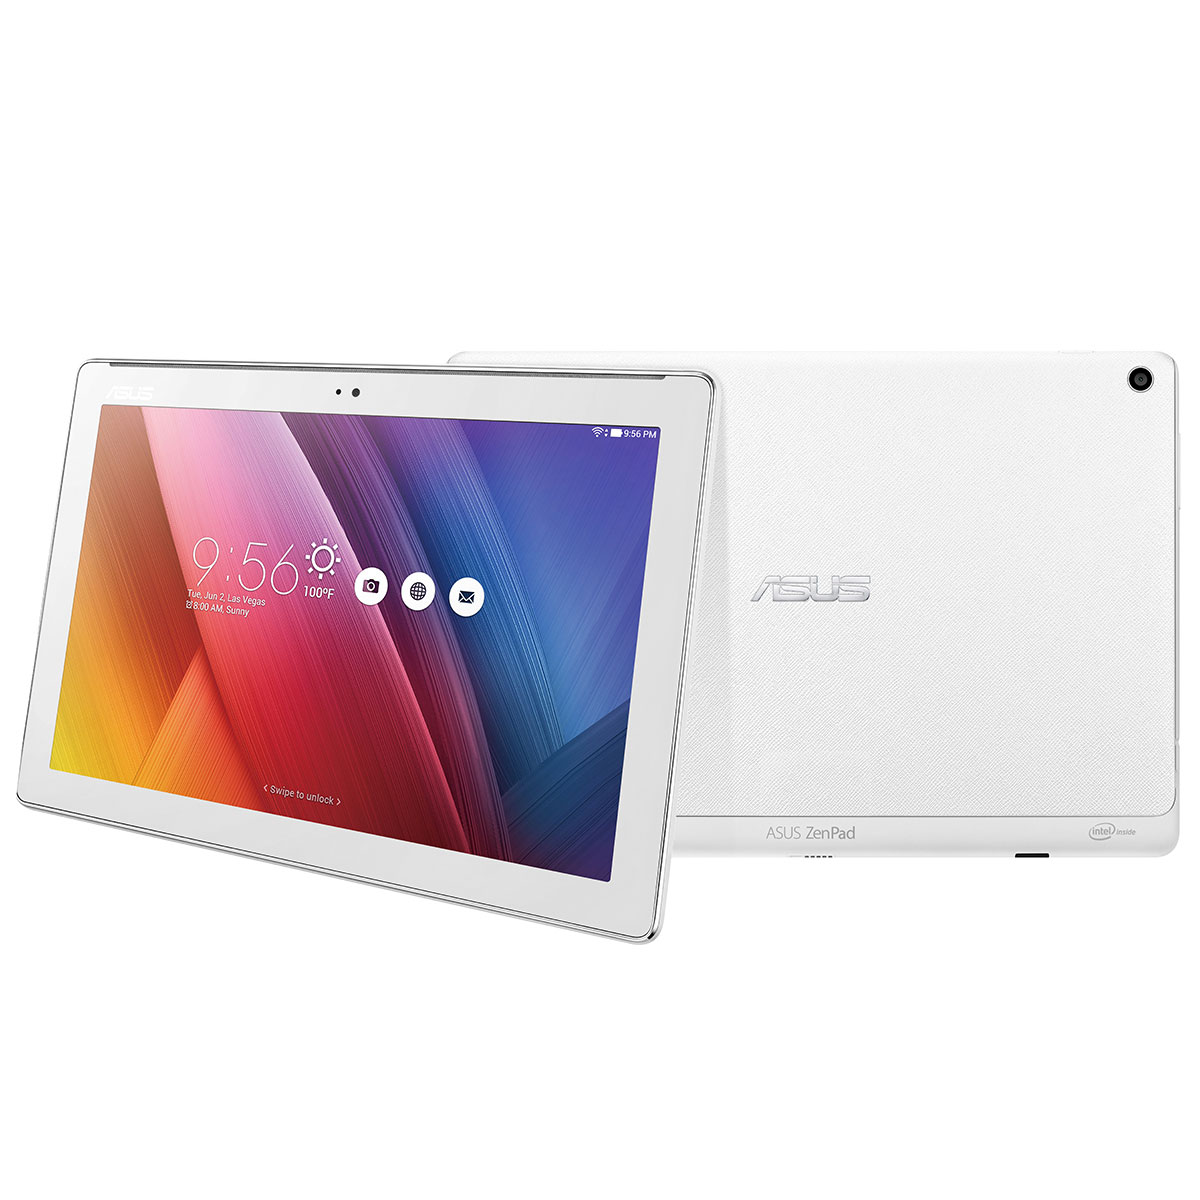 asus zenpad 10 z300c 1b045a blanc tablette tactile asus sur. Black Bedroom Furniture Sets. Home Design Ideas